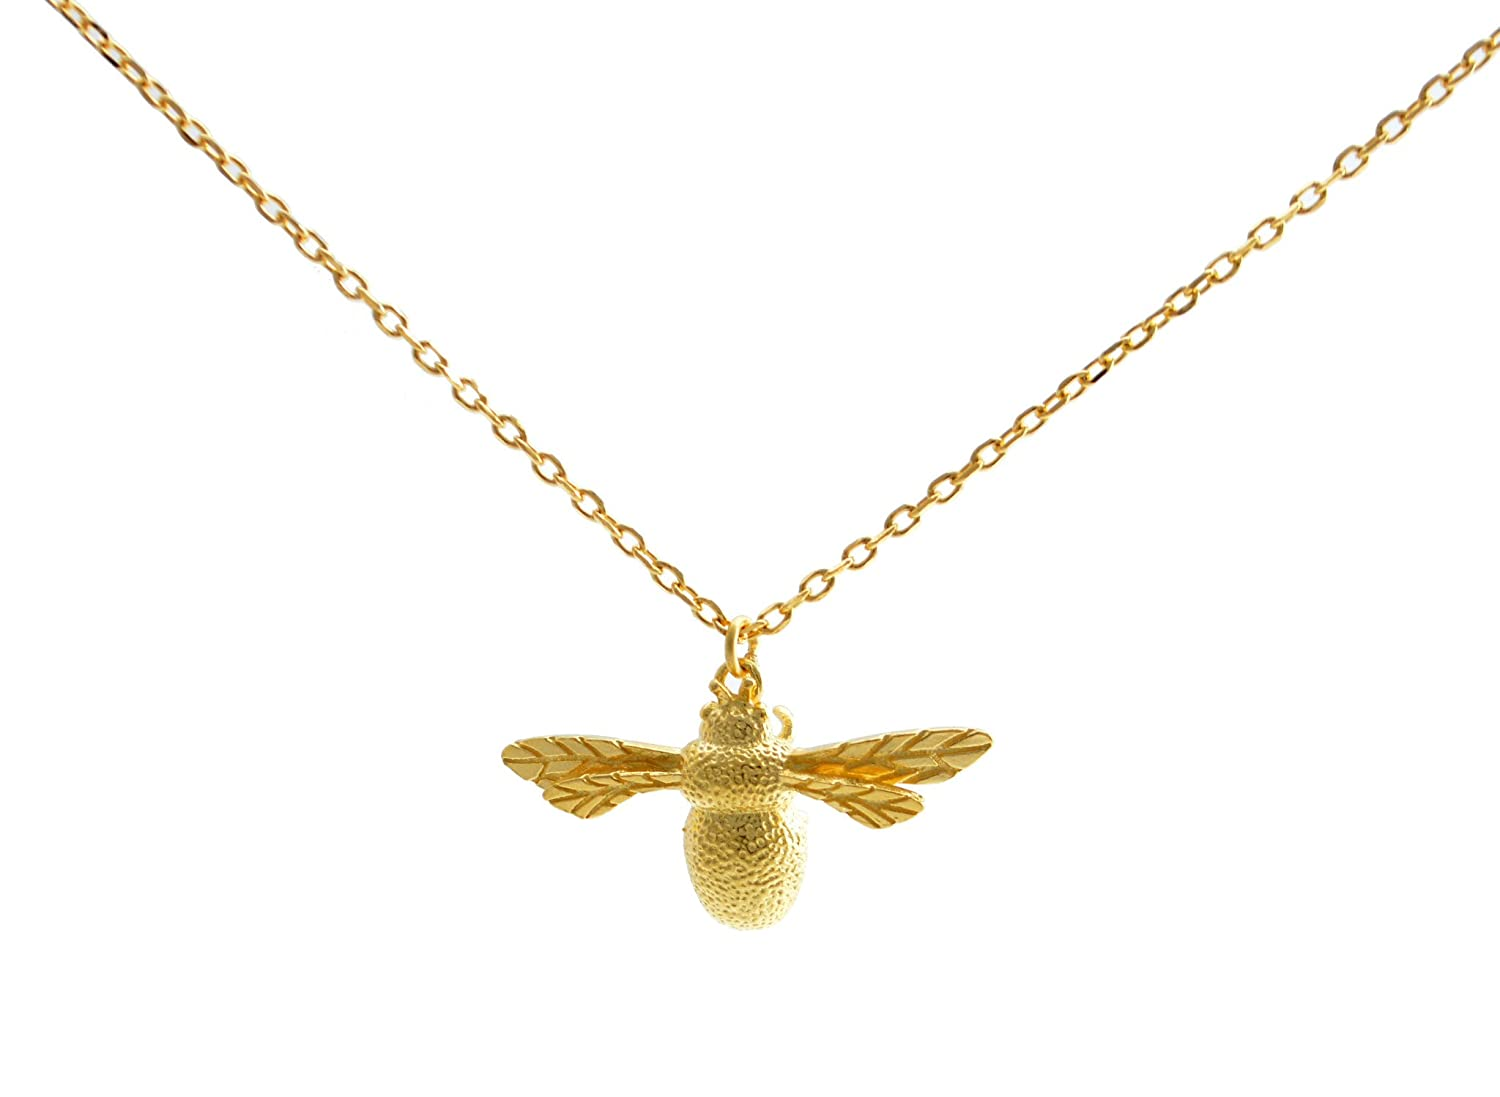 bee jewellery gold pendant bumble vintage necklace bonas oliver